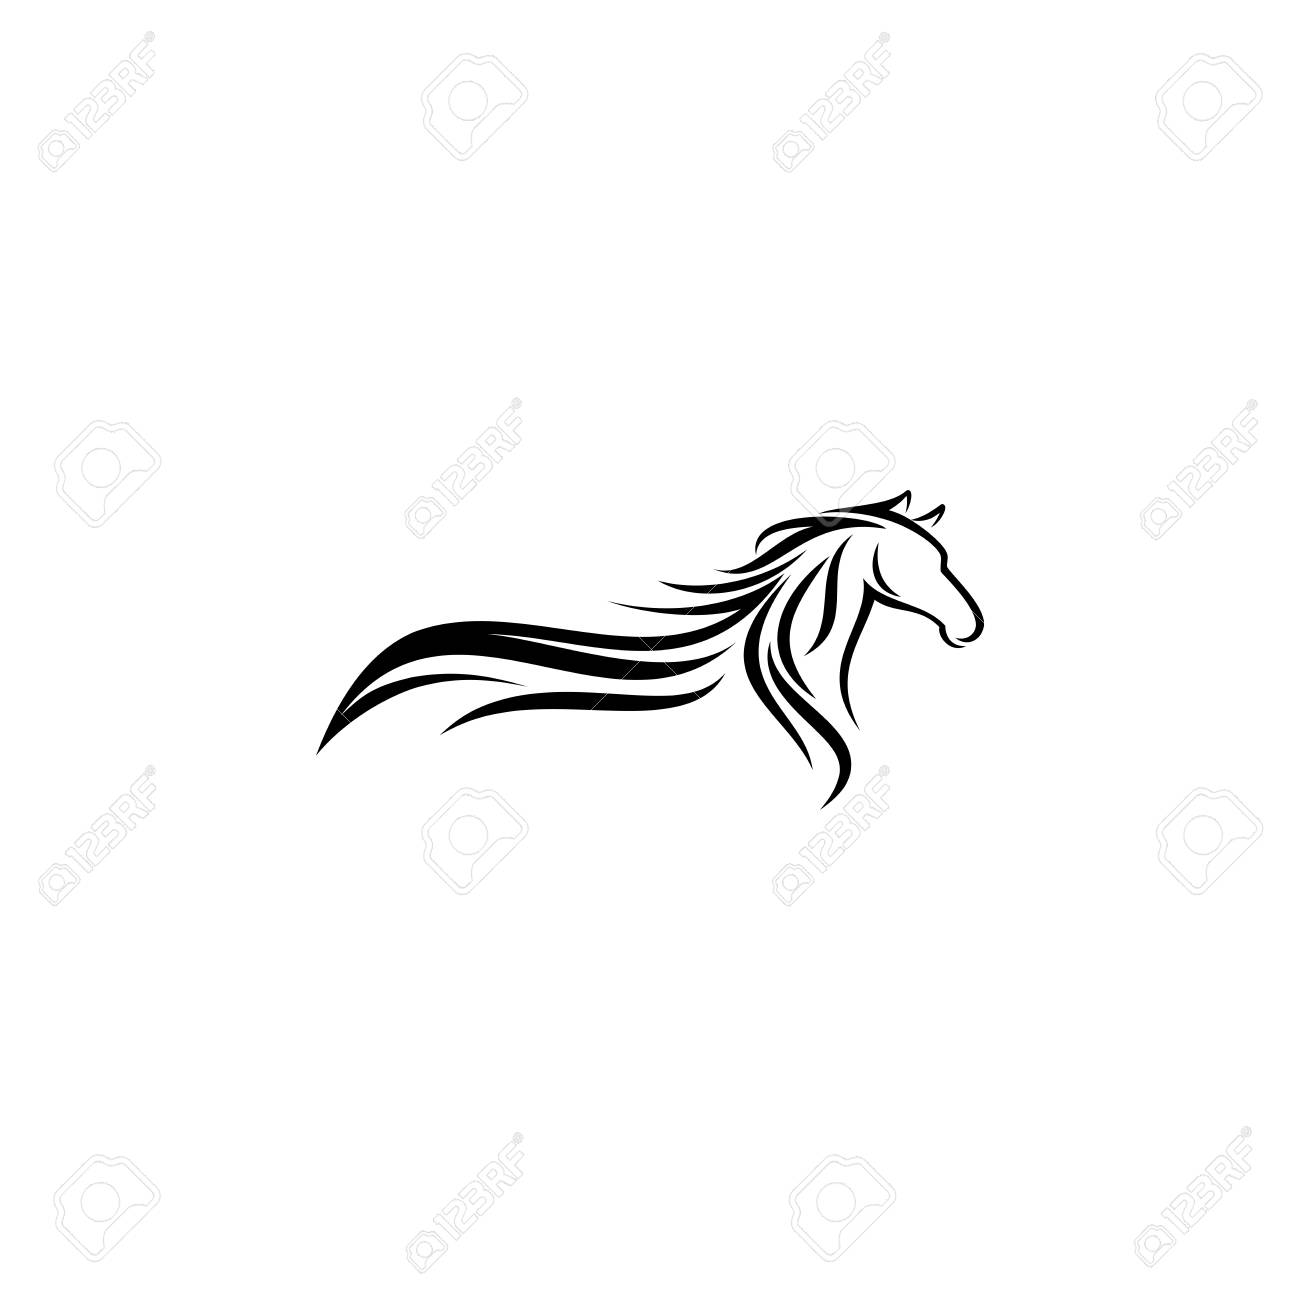 Abstract Horse Logo Design Inspiration Royalty Free Cliparts Vectors And Stock Illustration Image 118886515